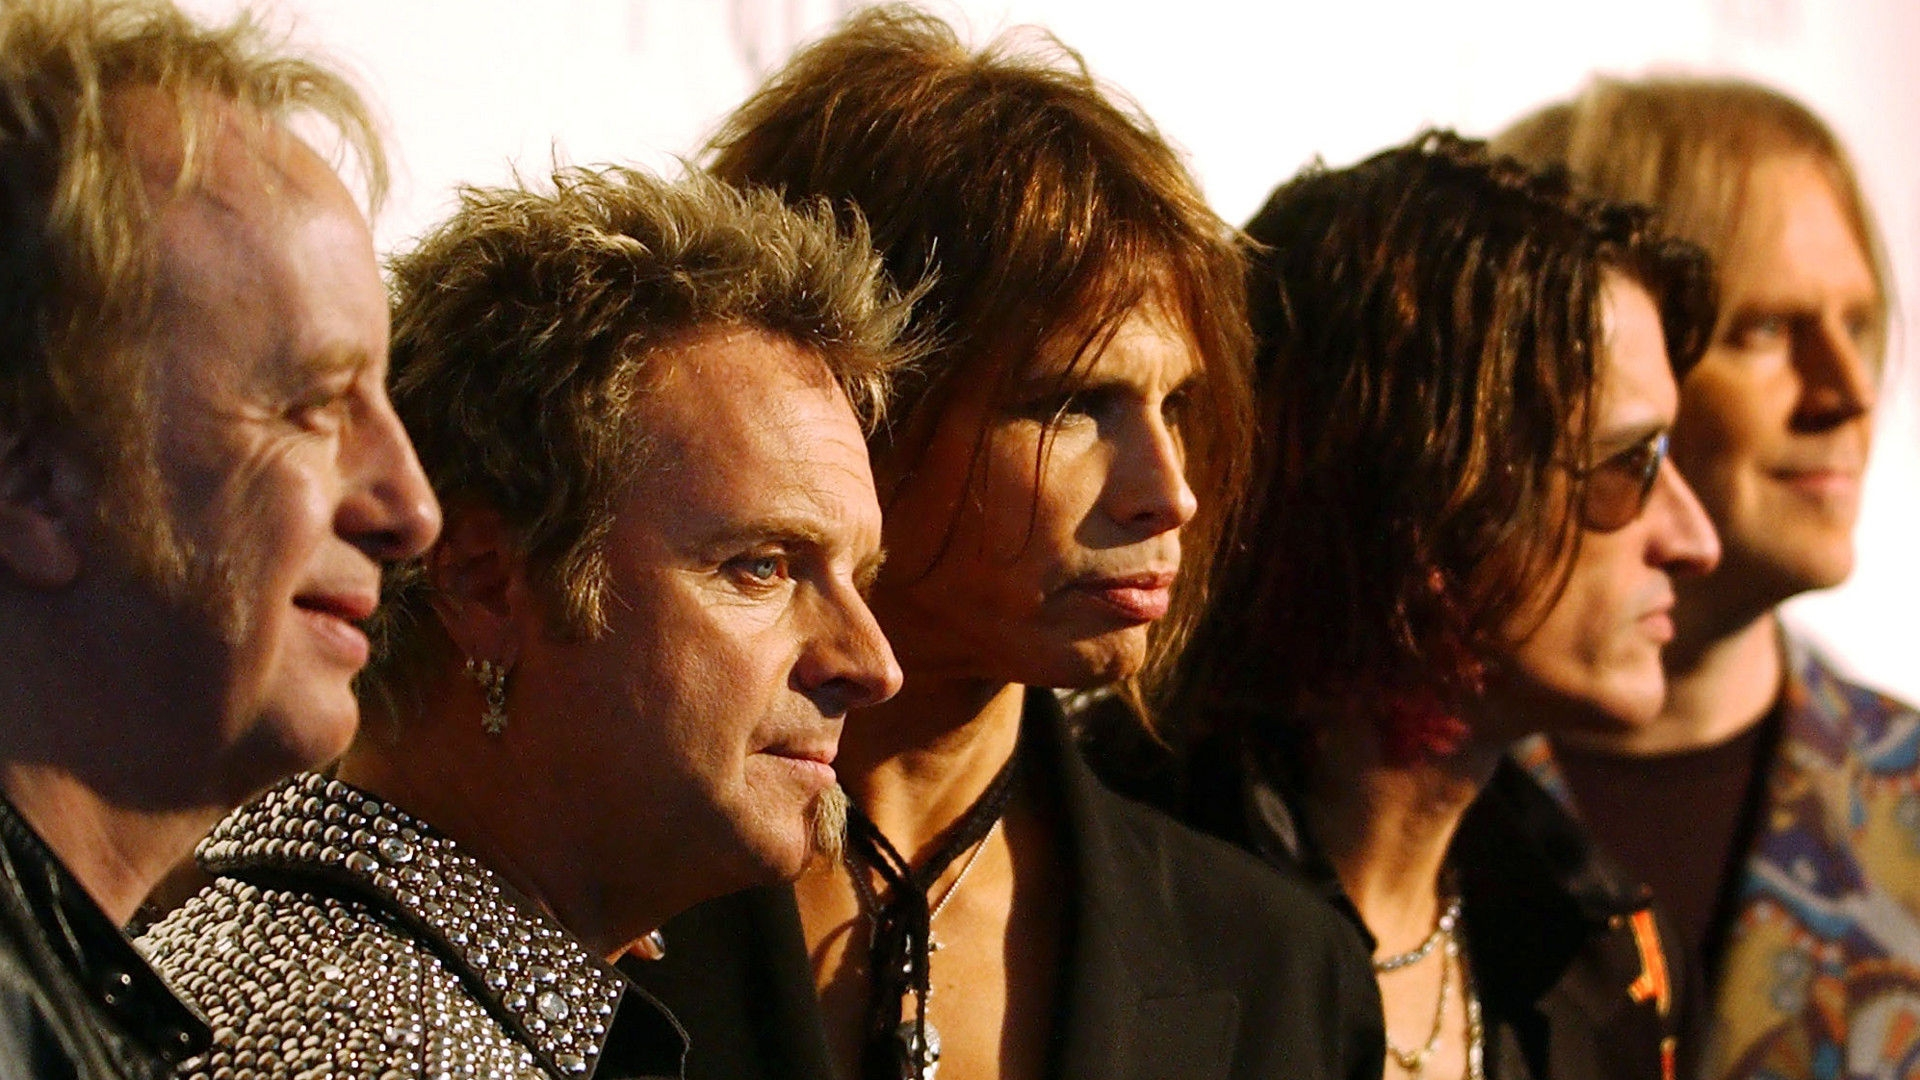 Download Wallpaper 1920x1080 Aerosmith Group Musicants Photo Set